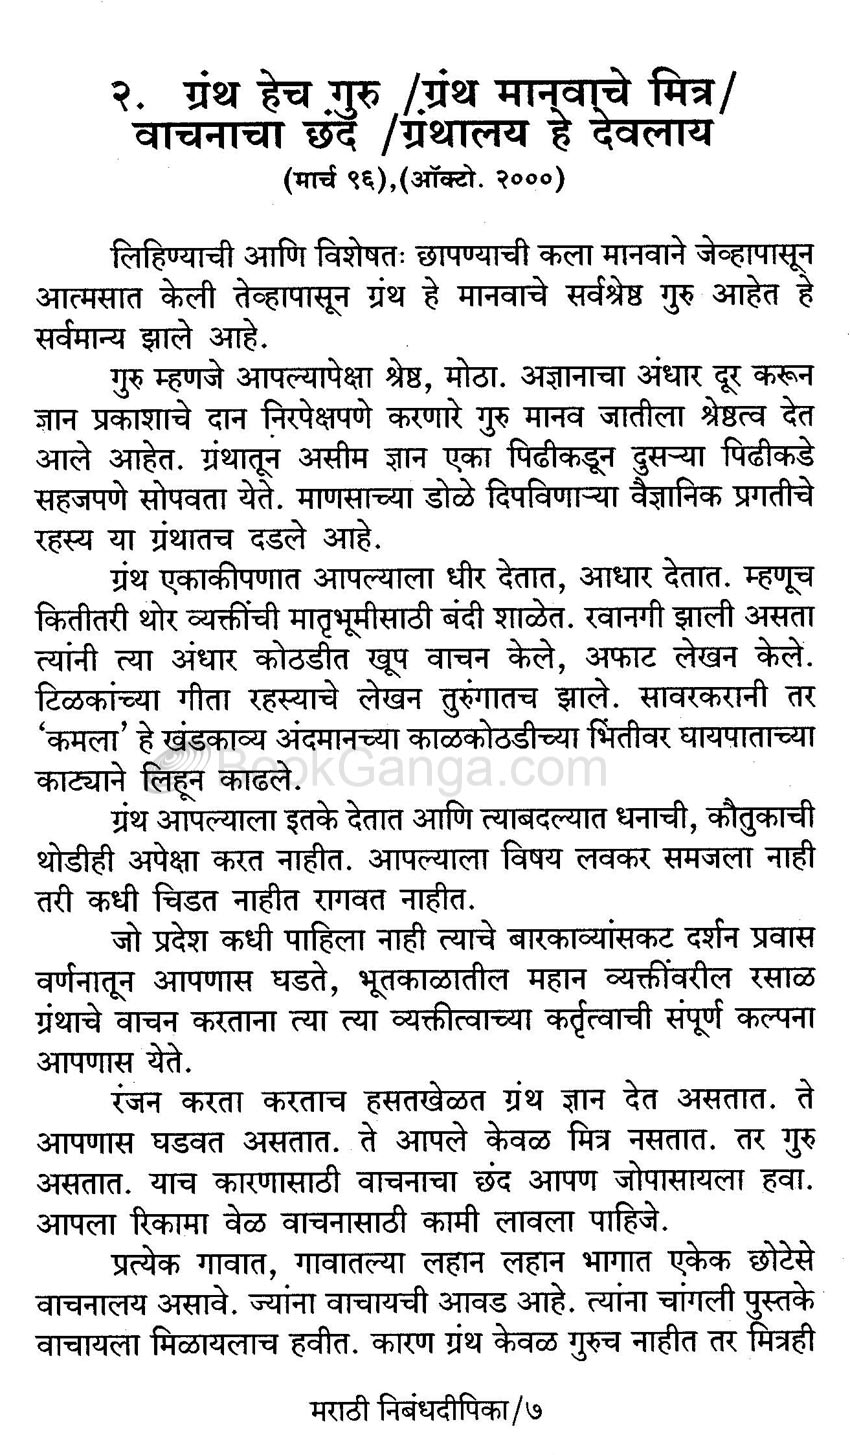 essays in marathi for students Essay instructions you will write 4 essays (double spaced, 12-point times new roman font) the first essay must be 1,000–1,200 words, and the following essays must be 750–1,000 words each essay one corresponds to the essay one prompt as listed below essay two corresponds with the essay two prompt, etc through all four essays.